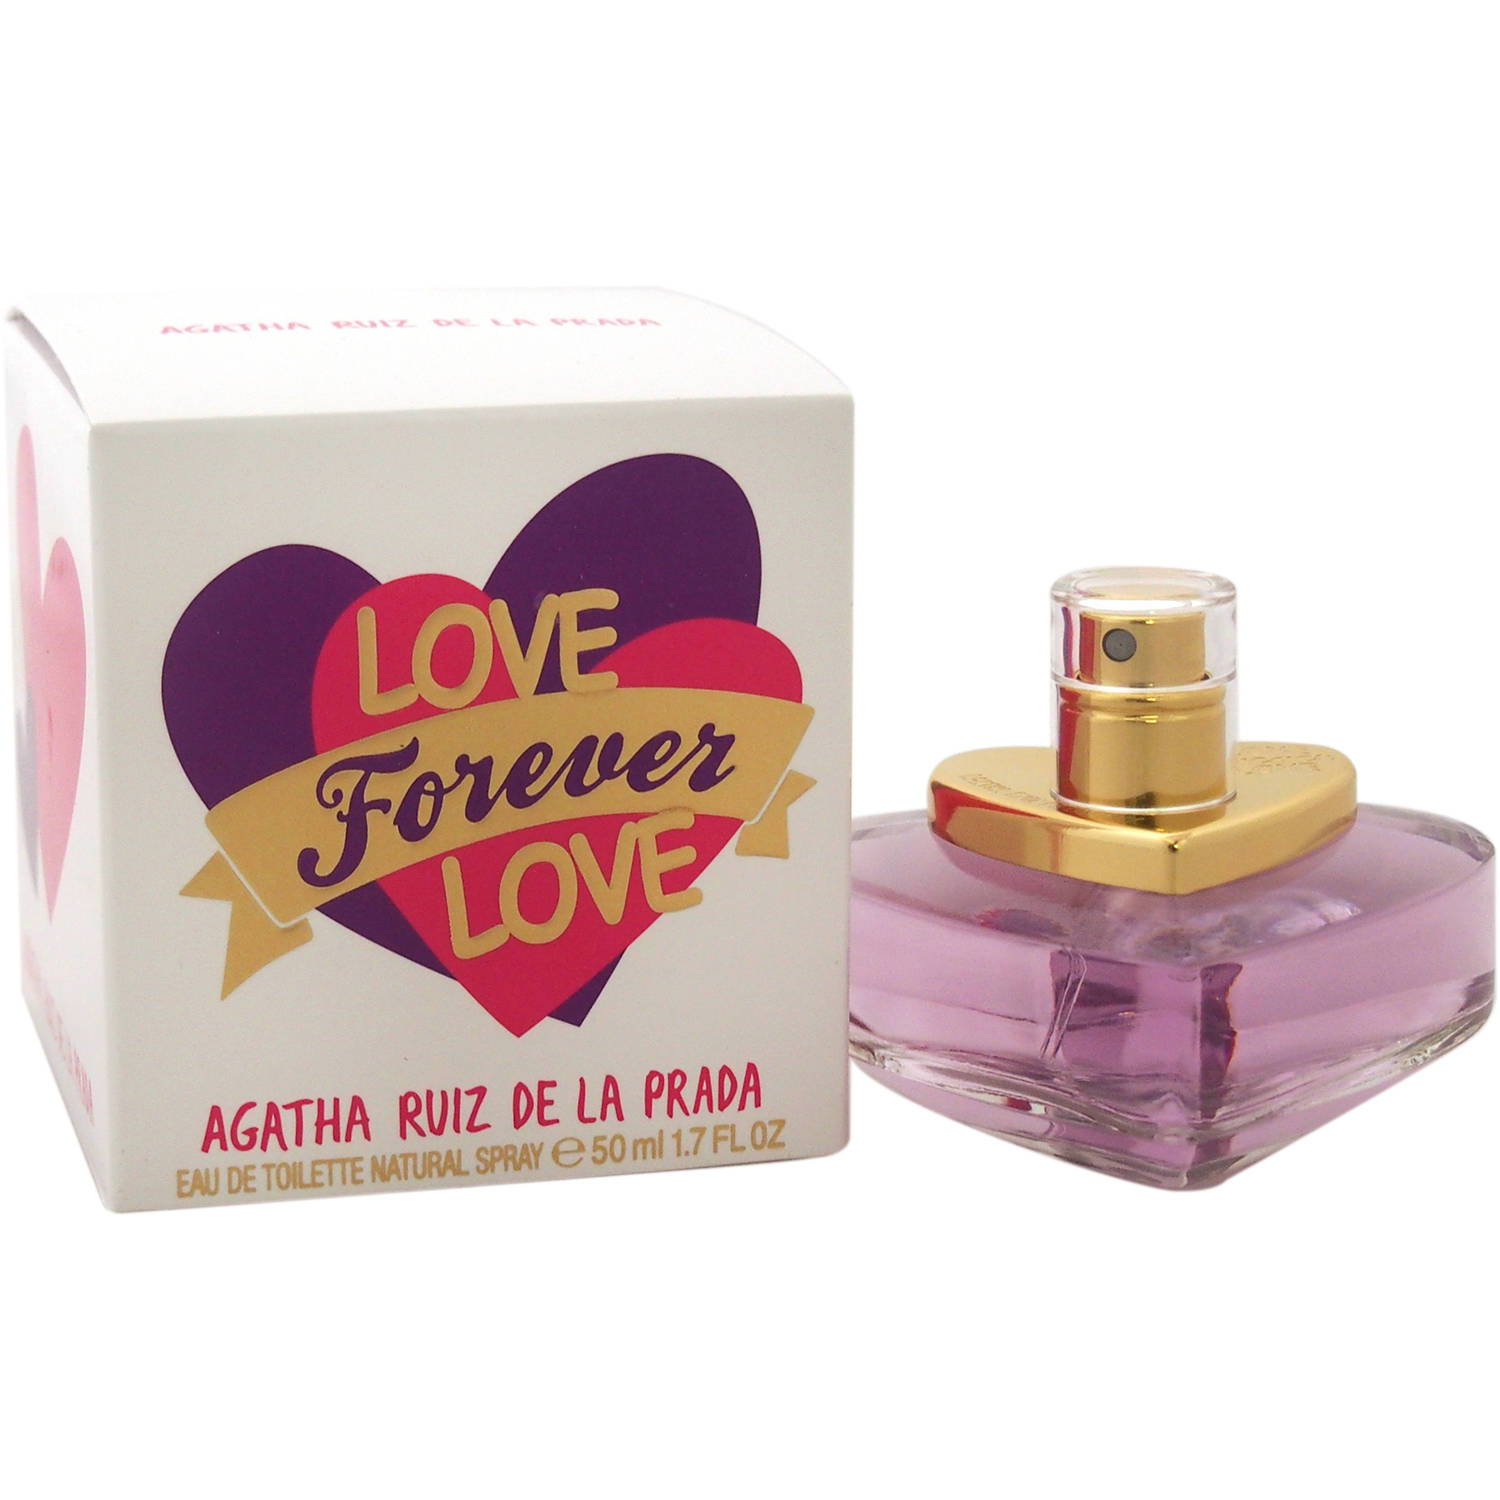 Image of Agatha Ruiz De la Prada Love Forever Love EDT Spray, 1.7 fl oz